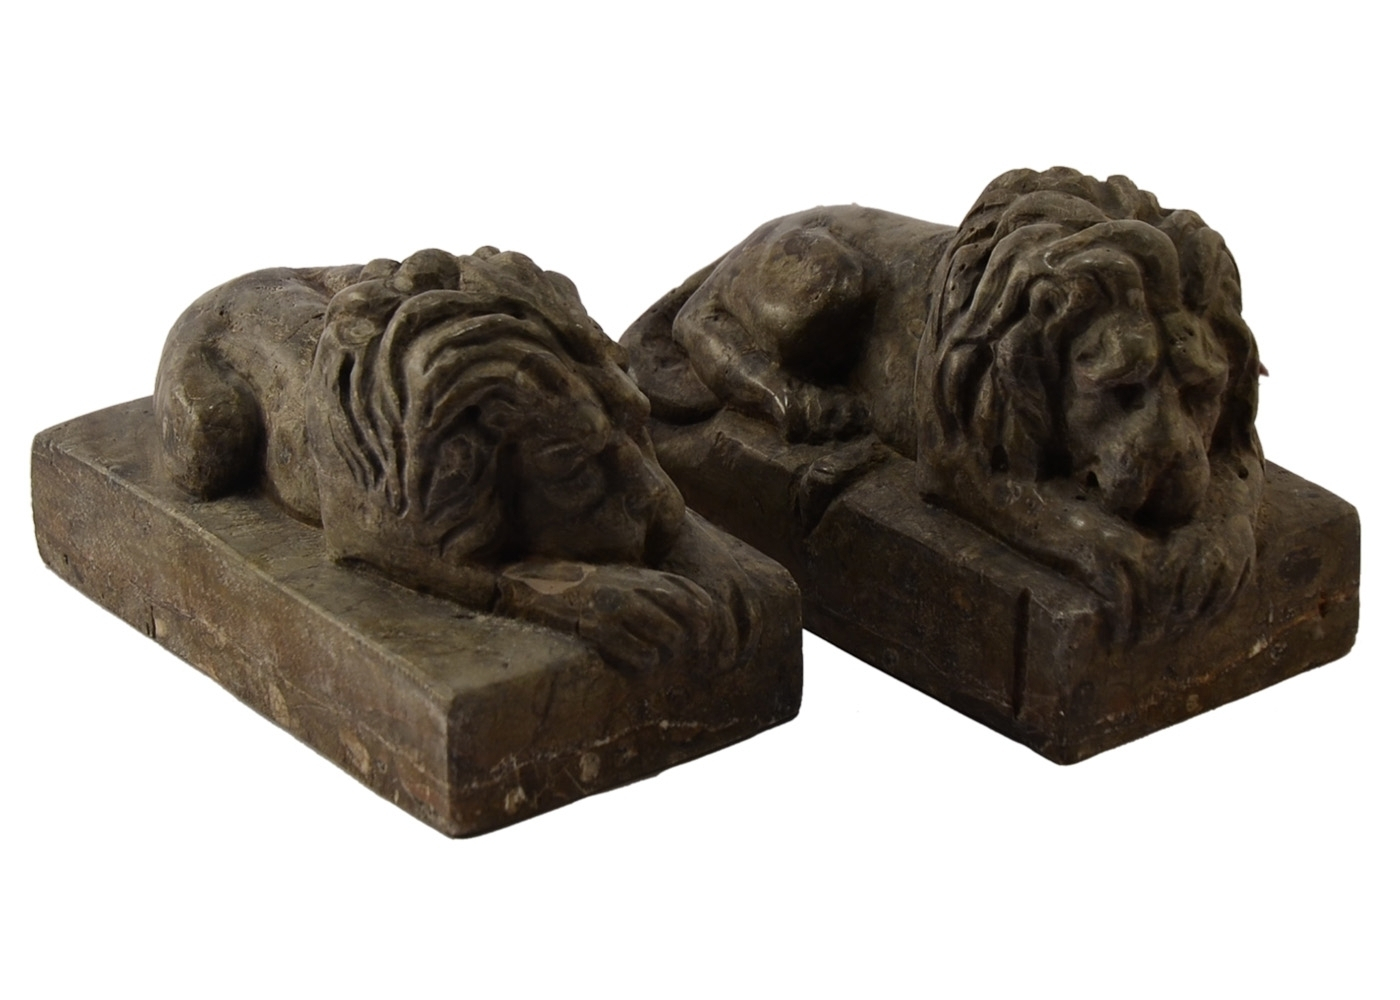 Best price Two Lions Paperweight Sculpture Table An Marble